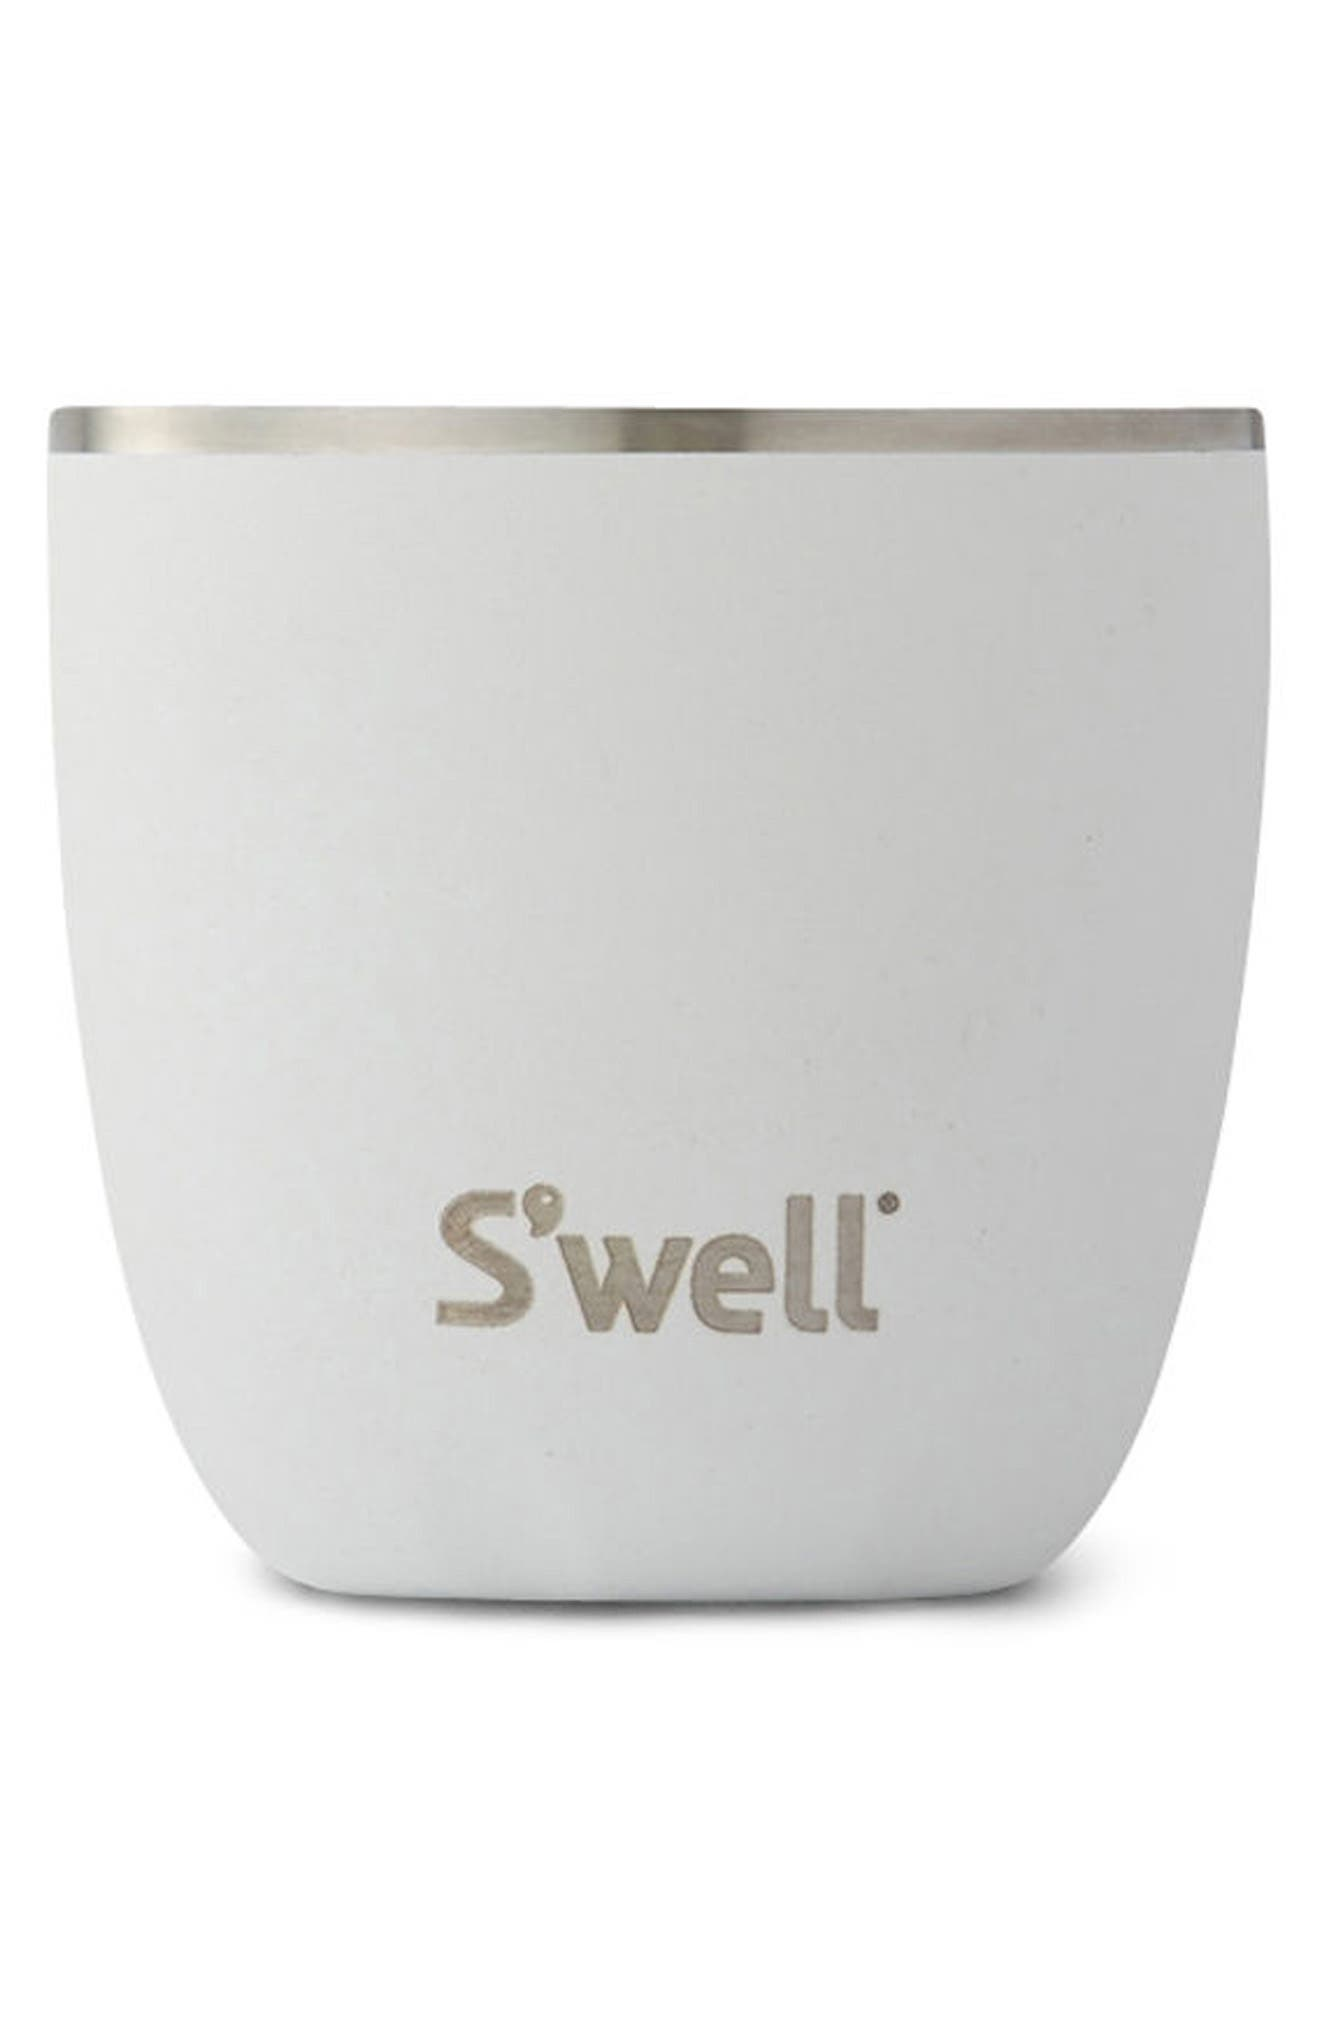 S'well Moonstone Stainless Steel Tumbler